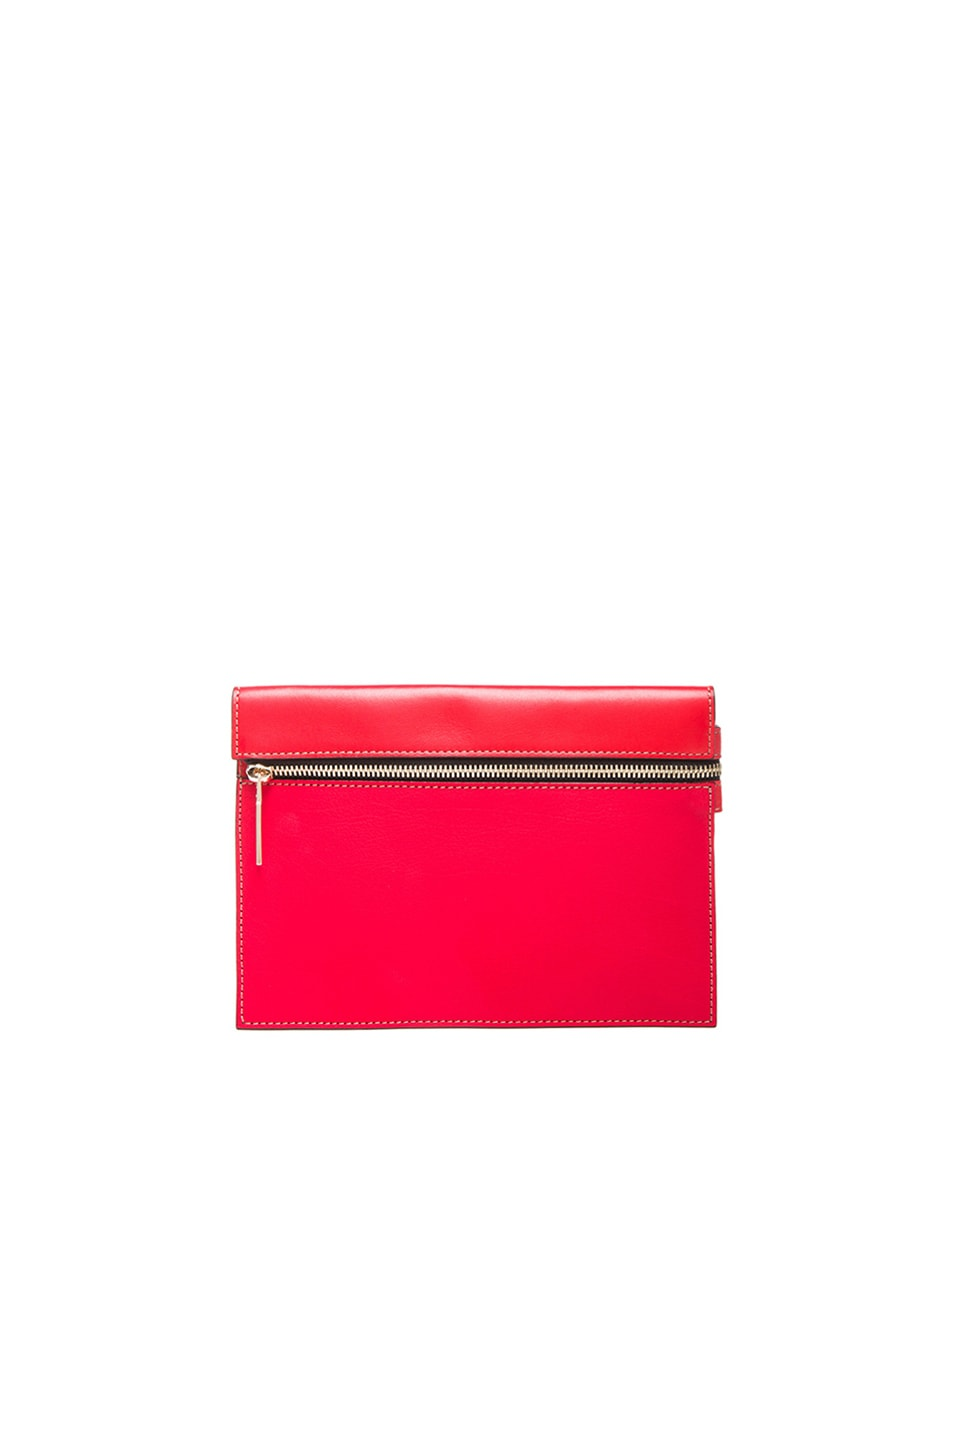 Image 1 of Victoria Beckham Small Zip Pouch in Pom Pom Red